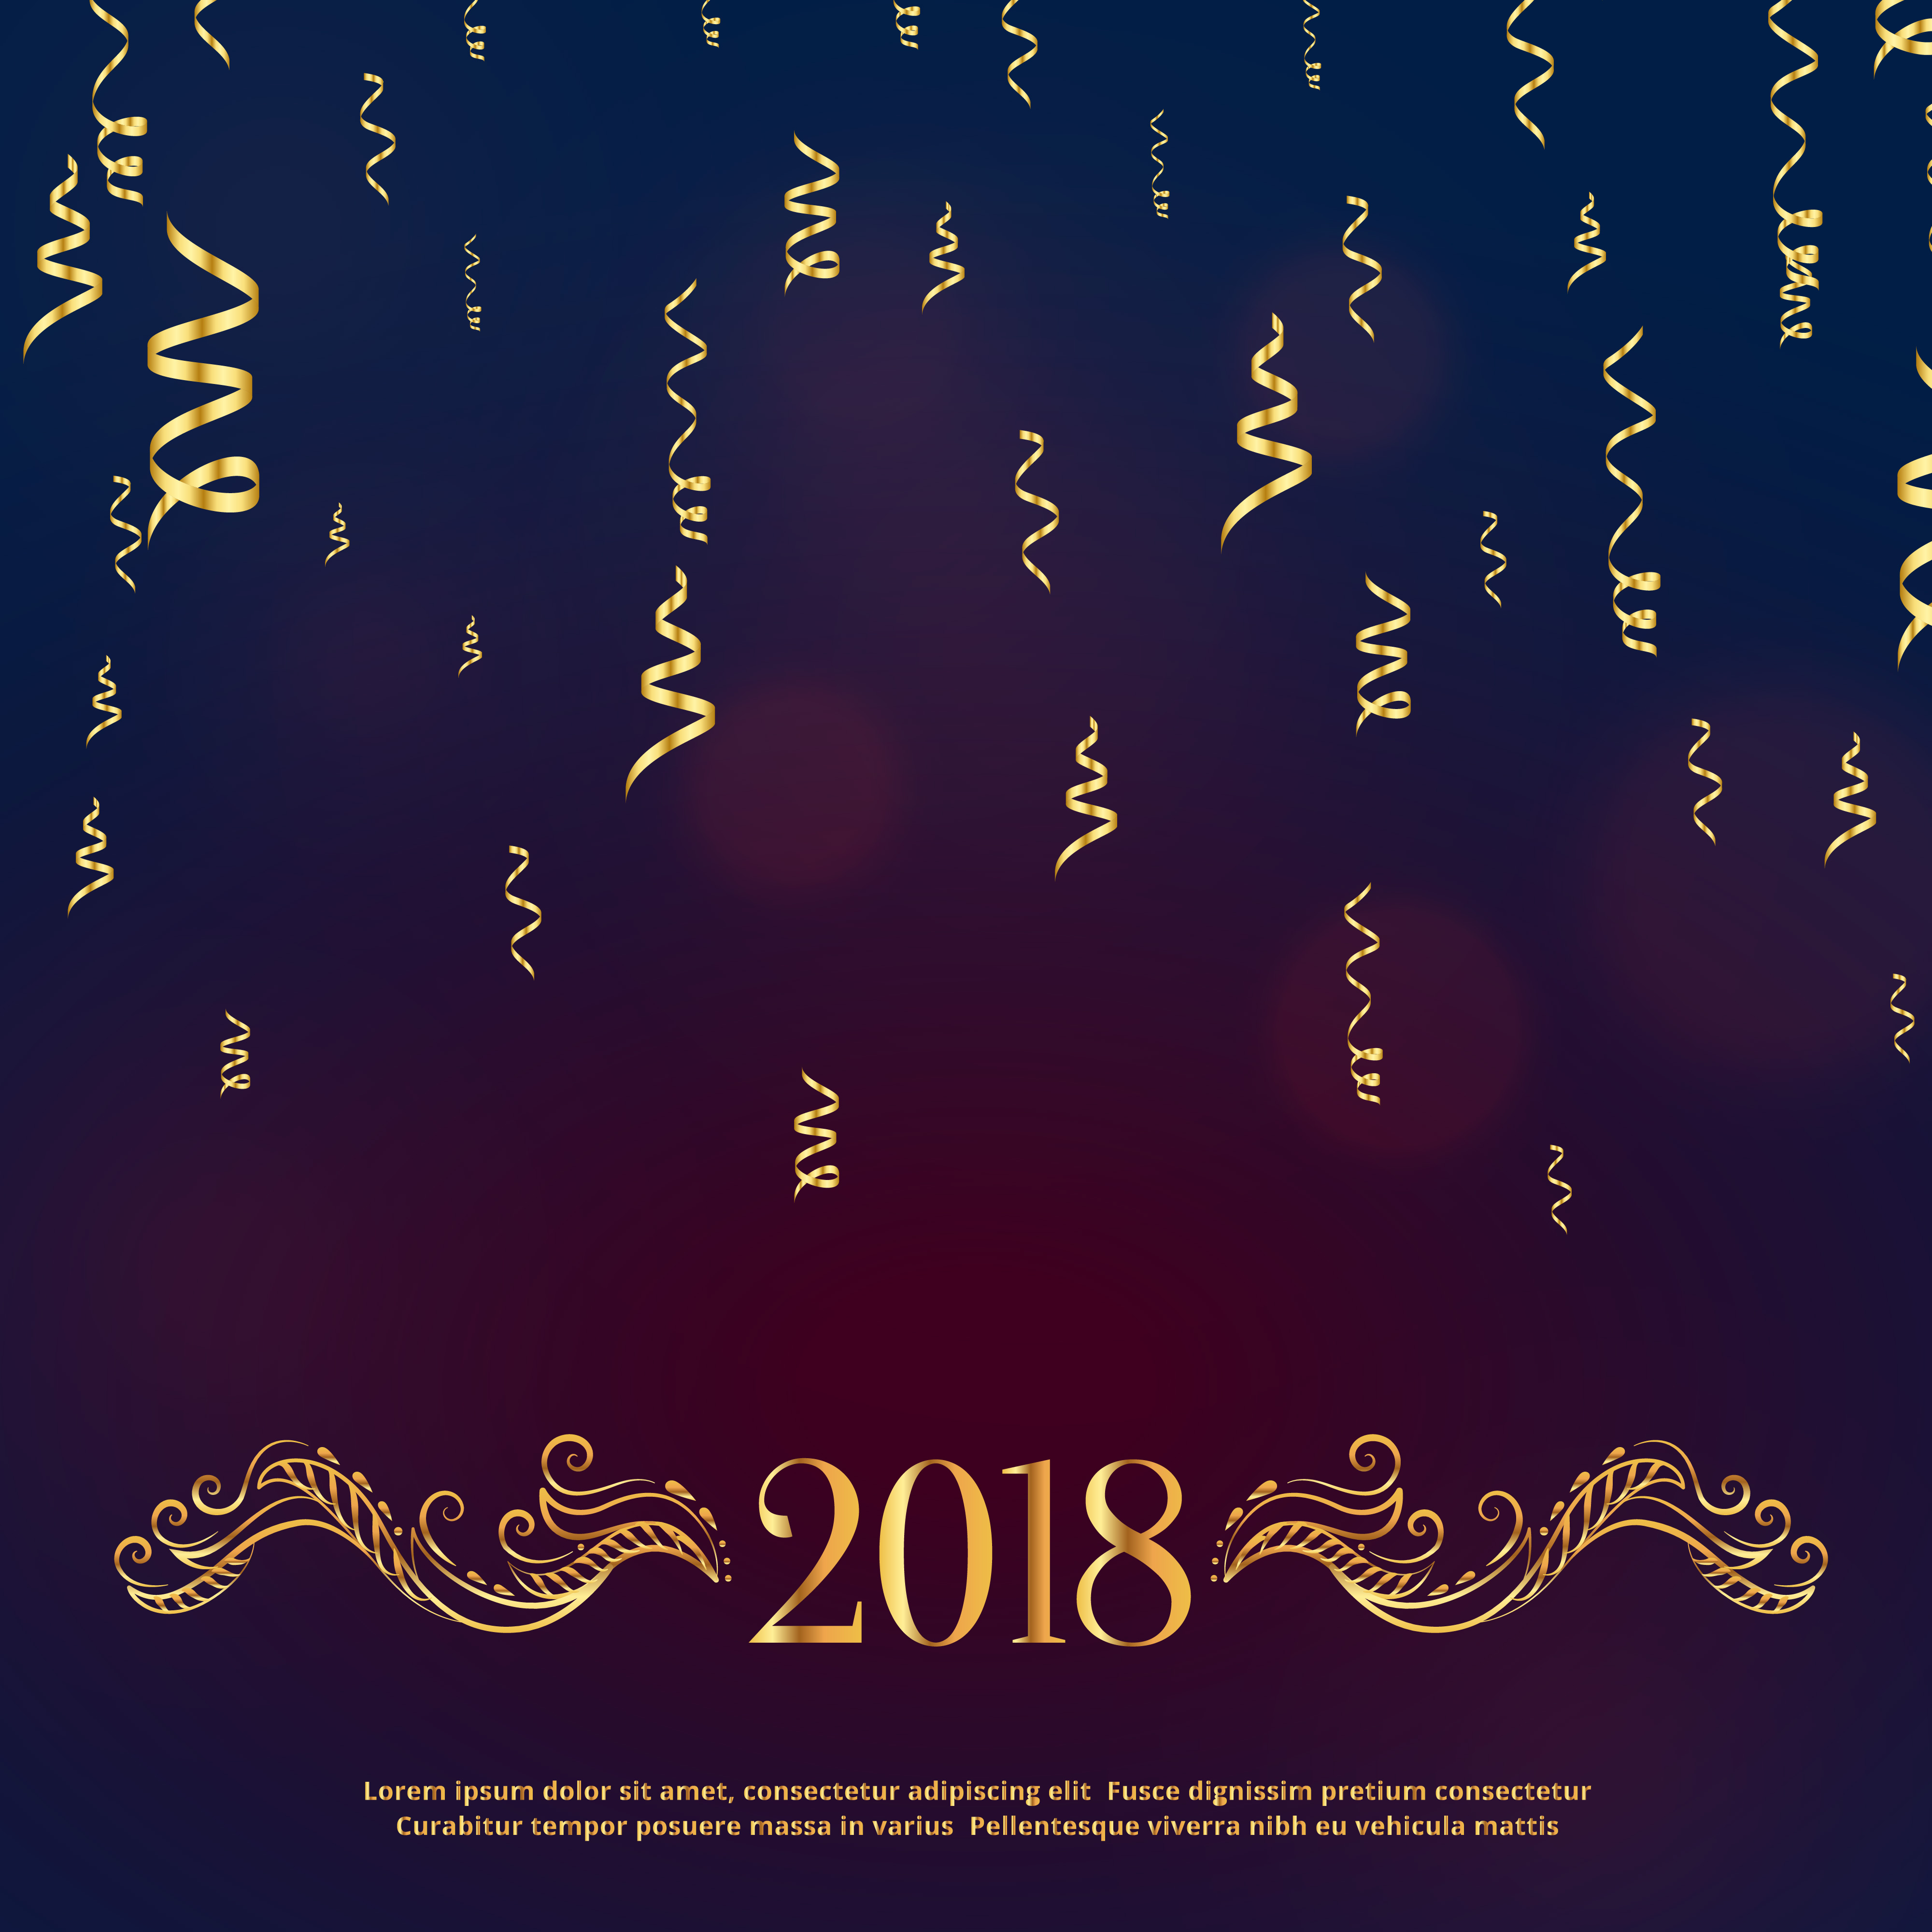 Luxury Style 2018 Happy New Year Greeting With Golden Floral Dec